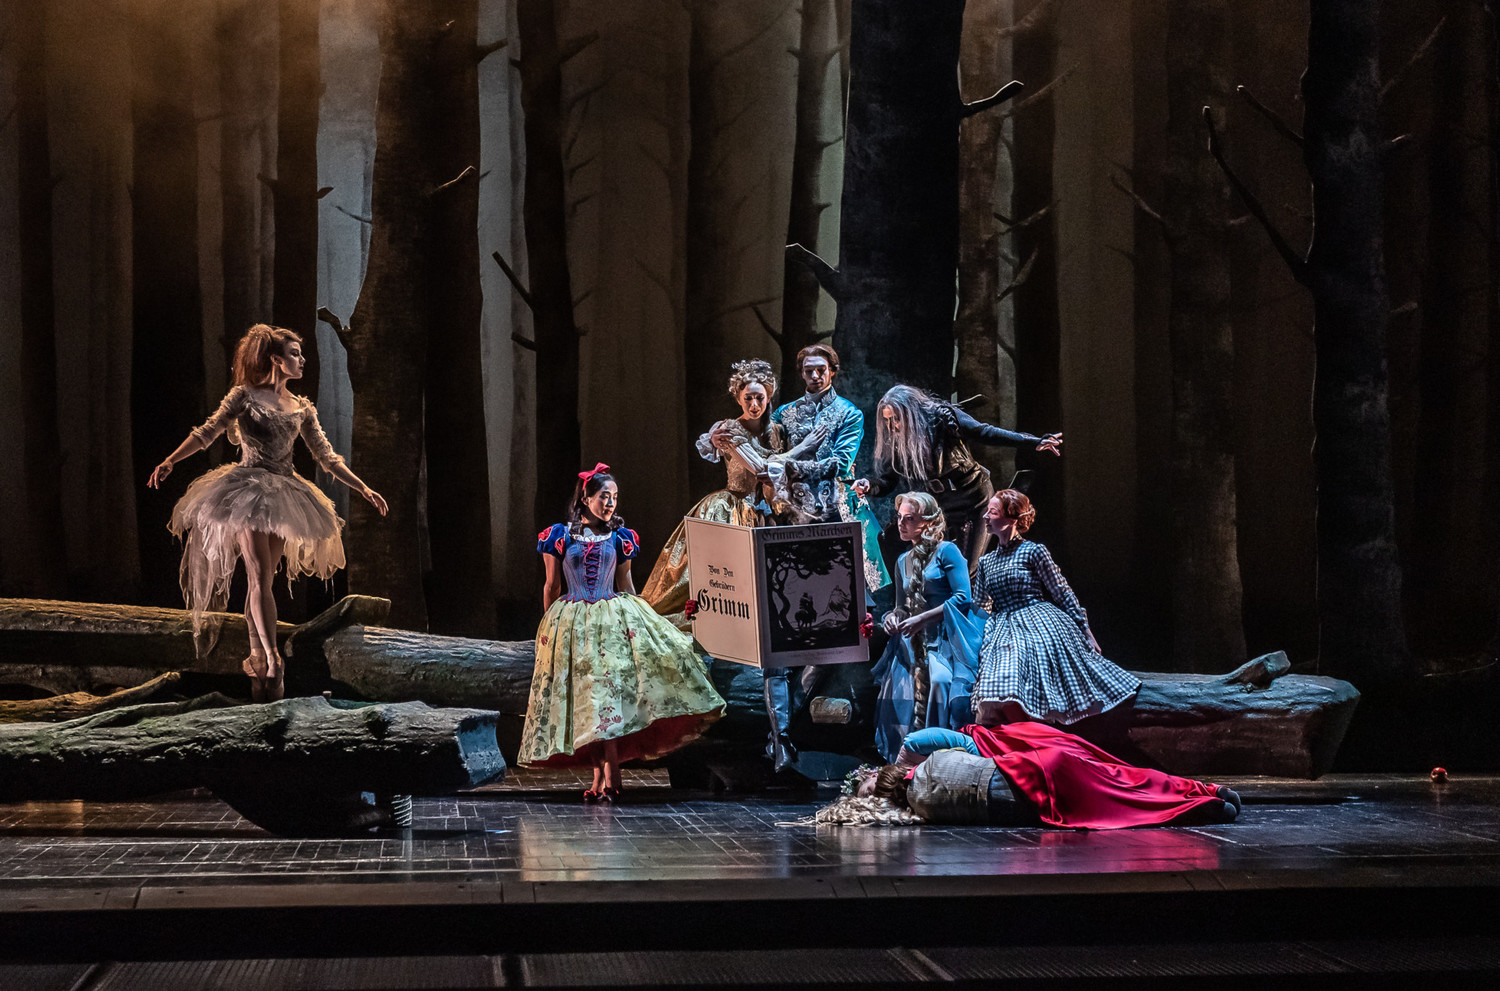 BWW Review: HANSEL AND GRETEL, Royal Opera House